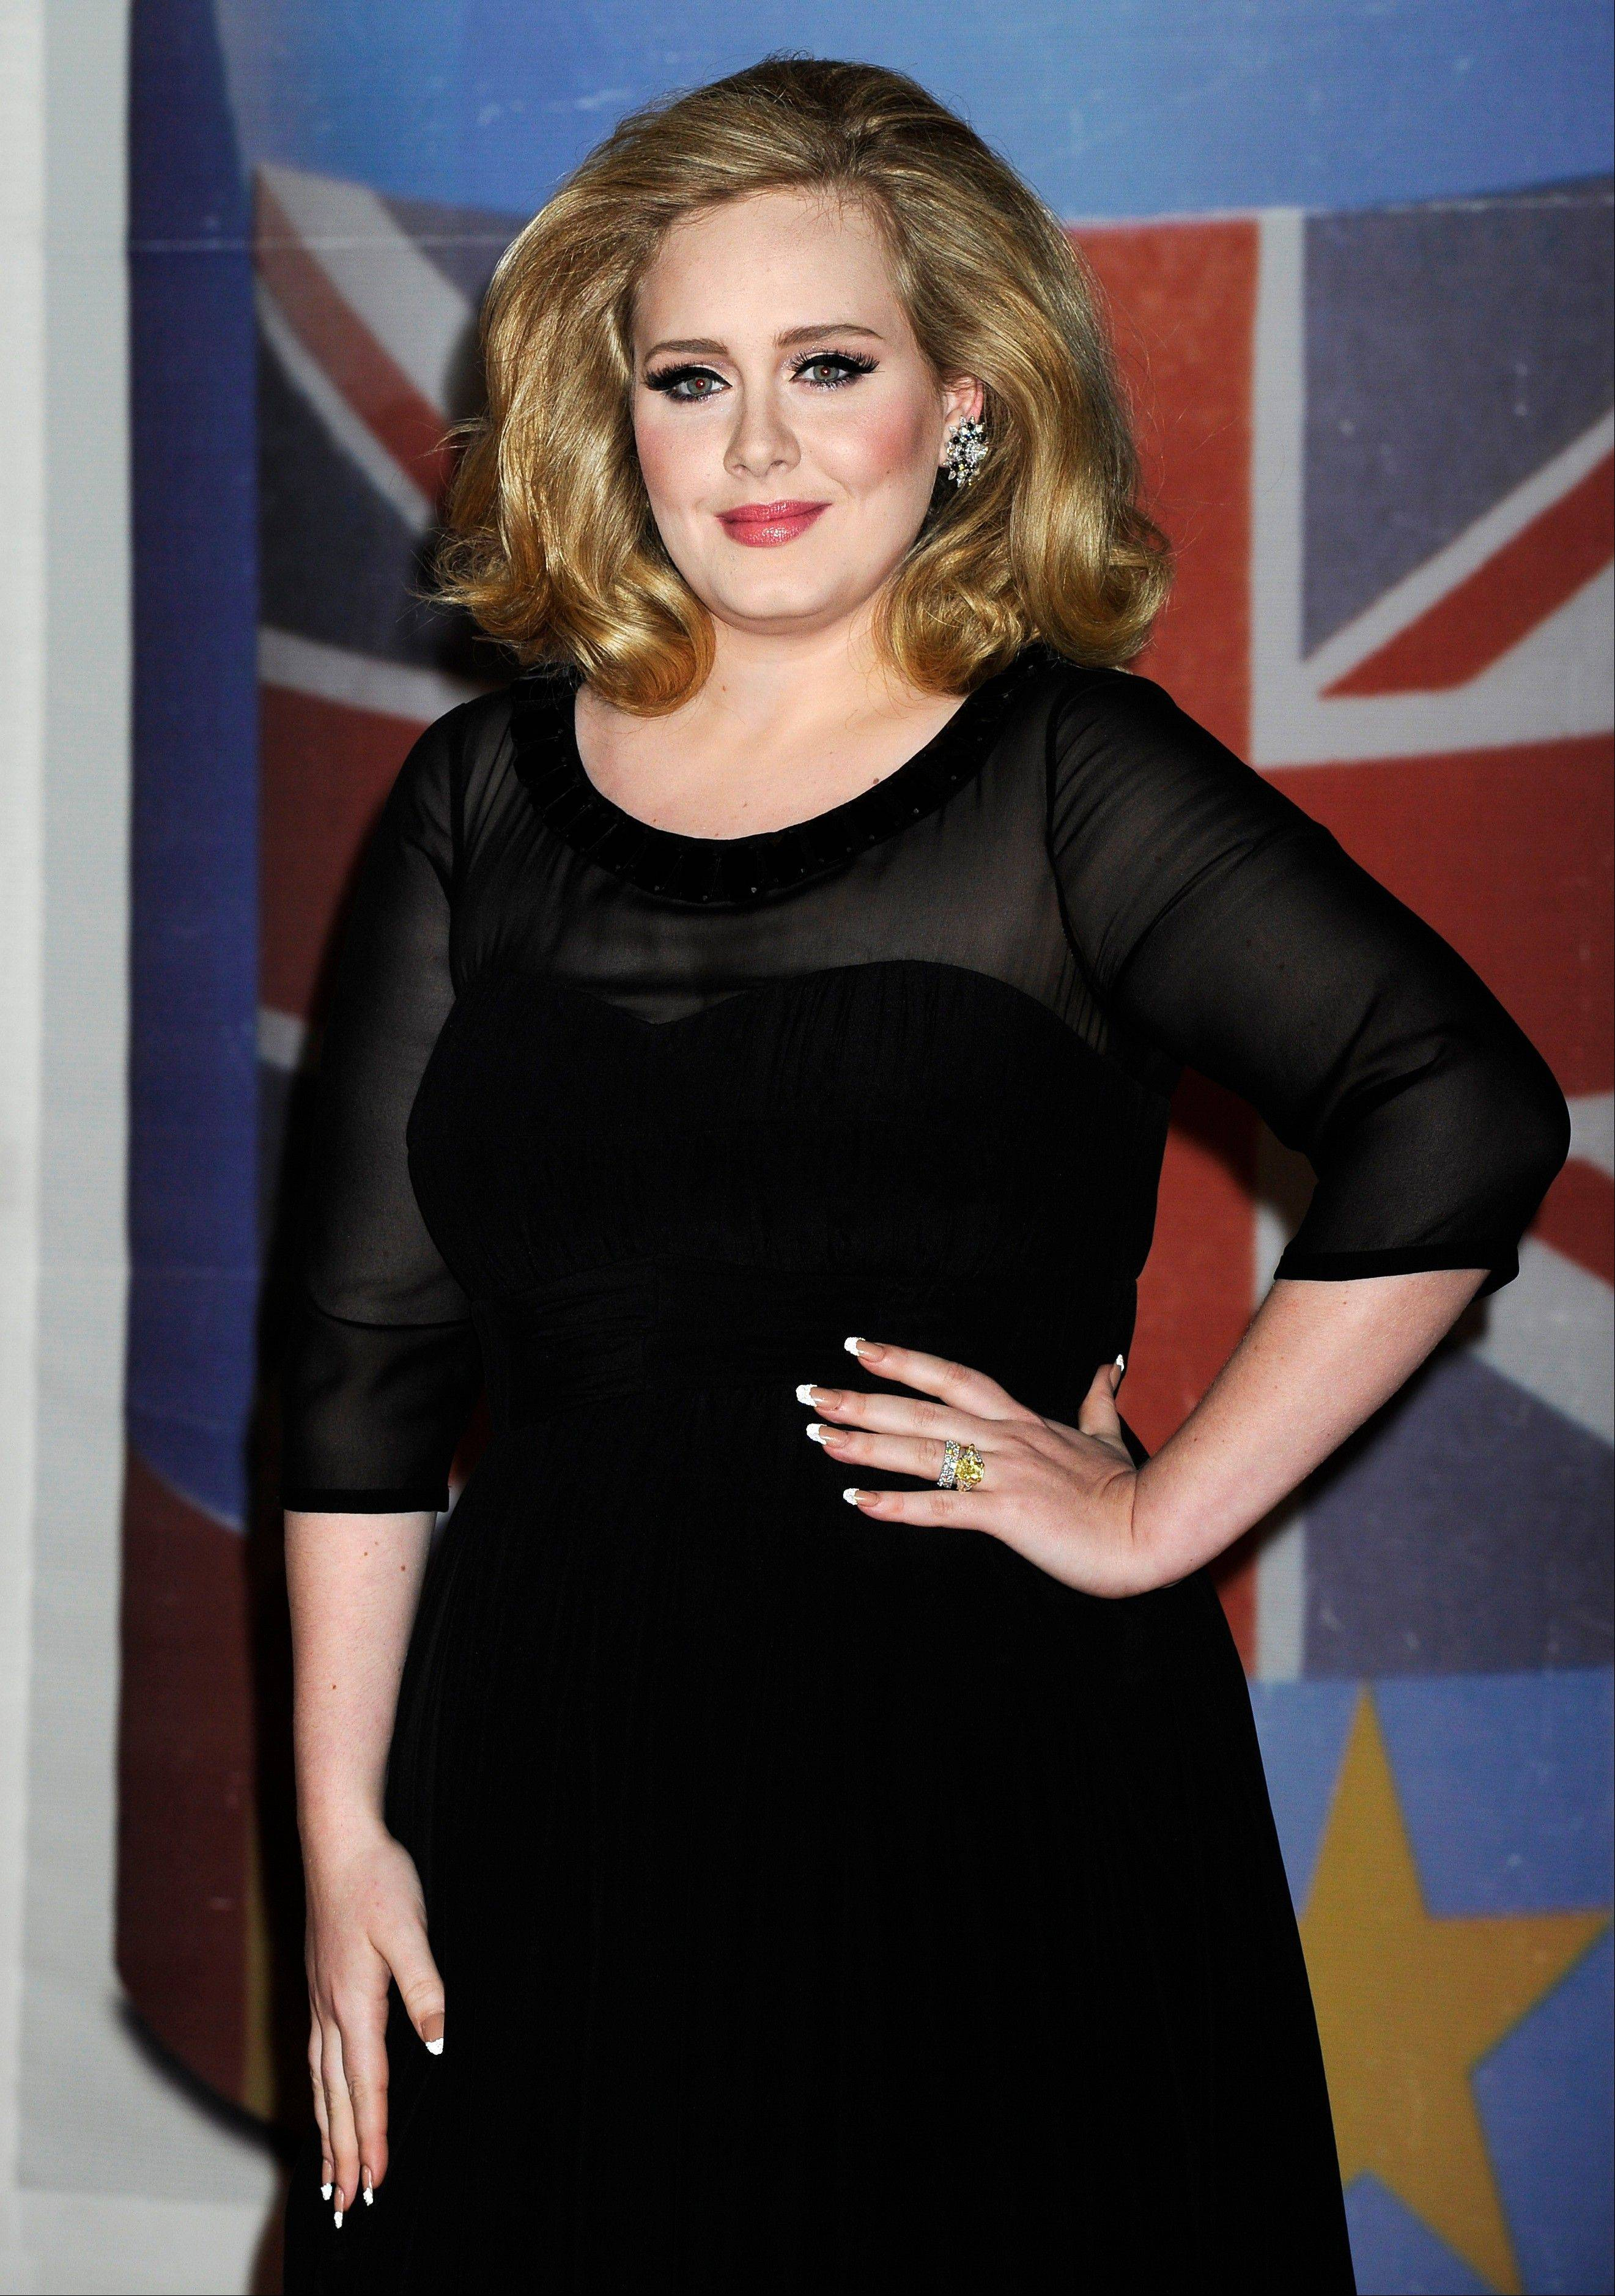 Adele will perform the James Bond theme �Skyfall� at the Oscars, her first U.S. performance since last year�s Grammy Awards.